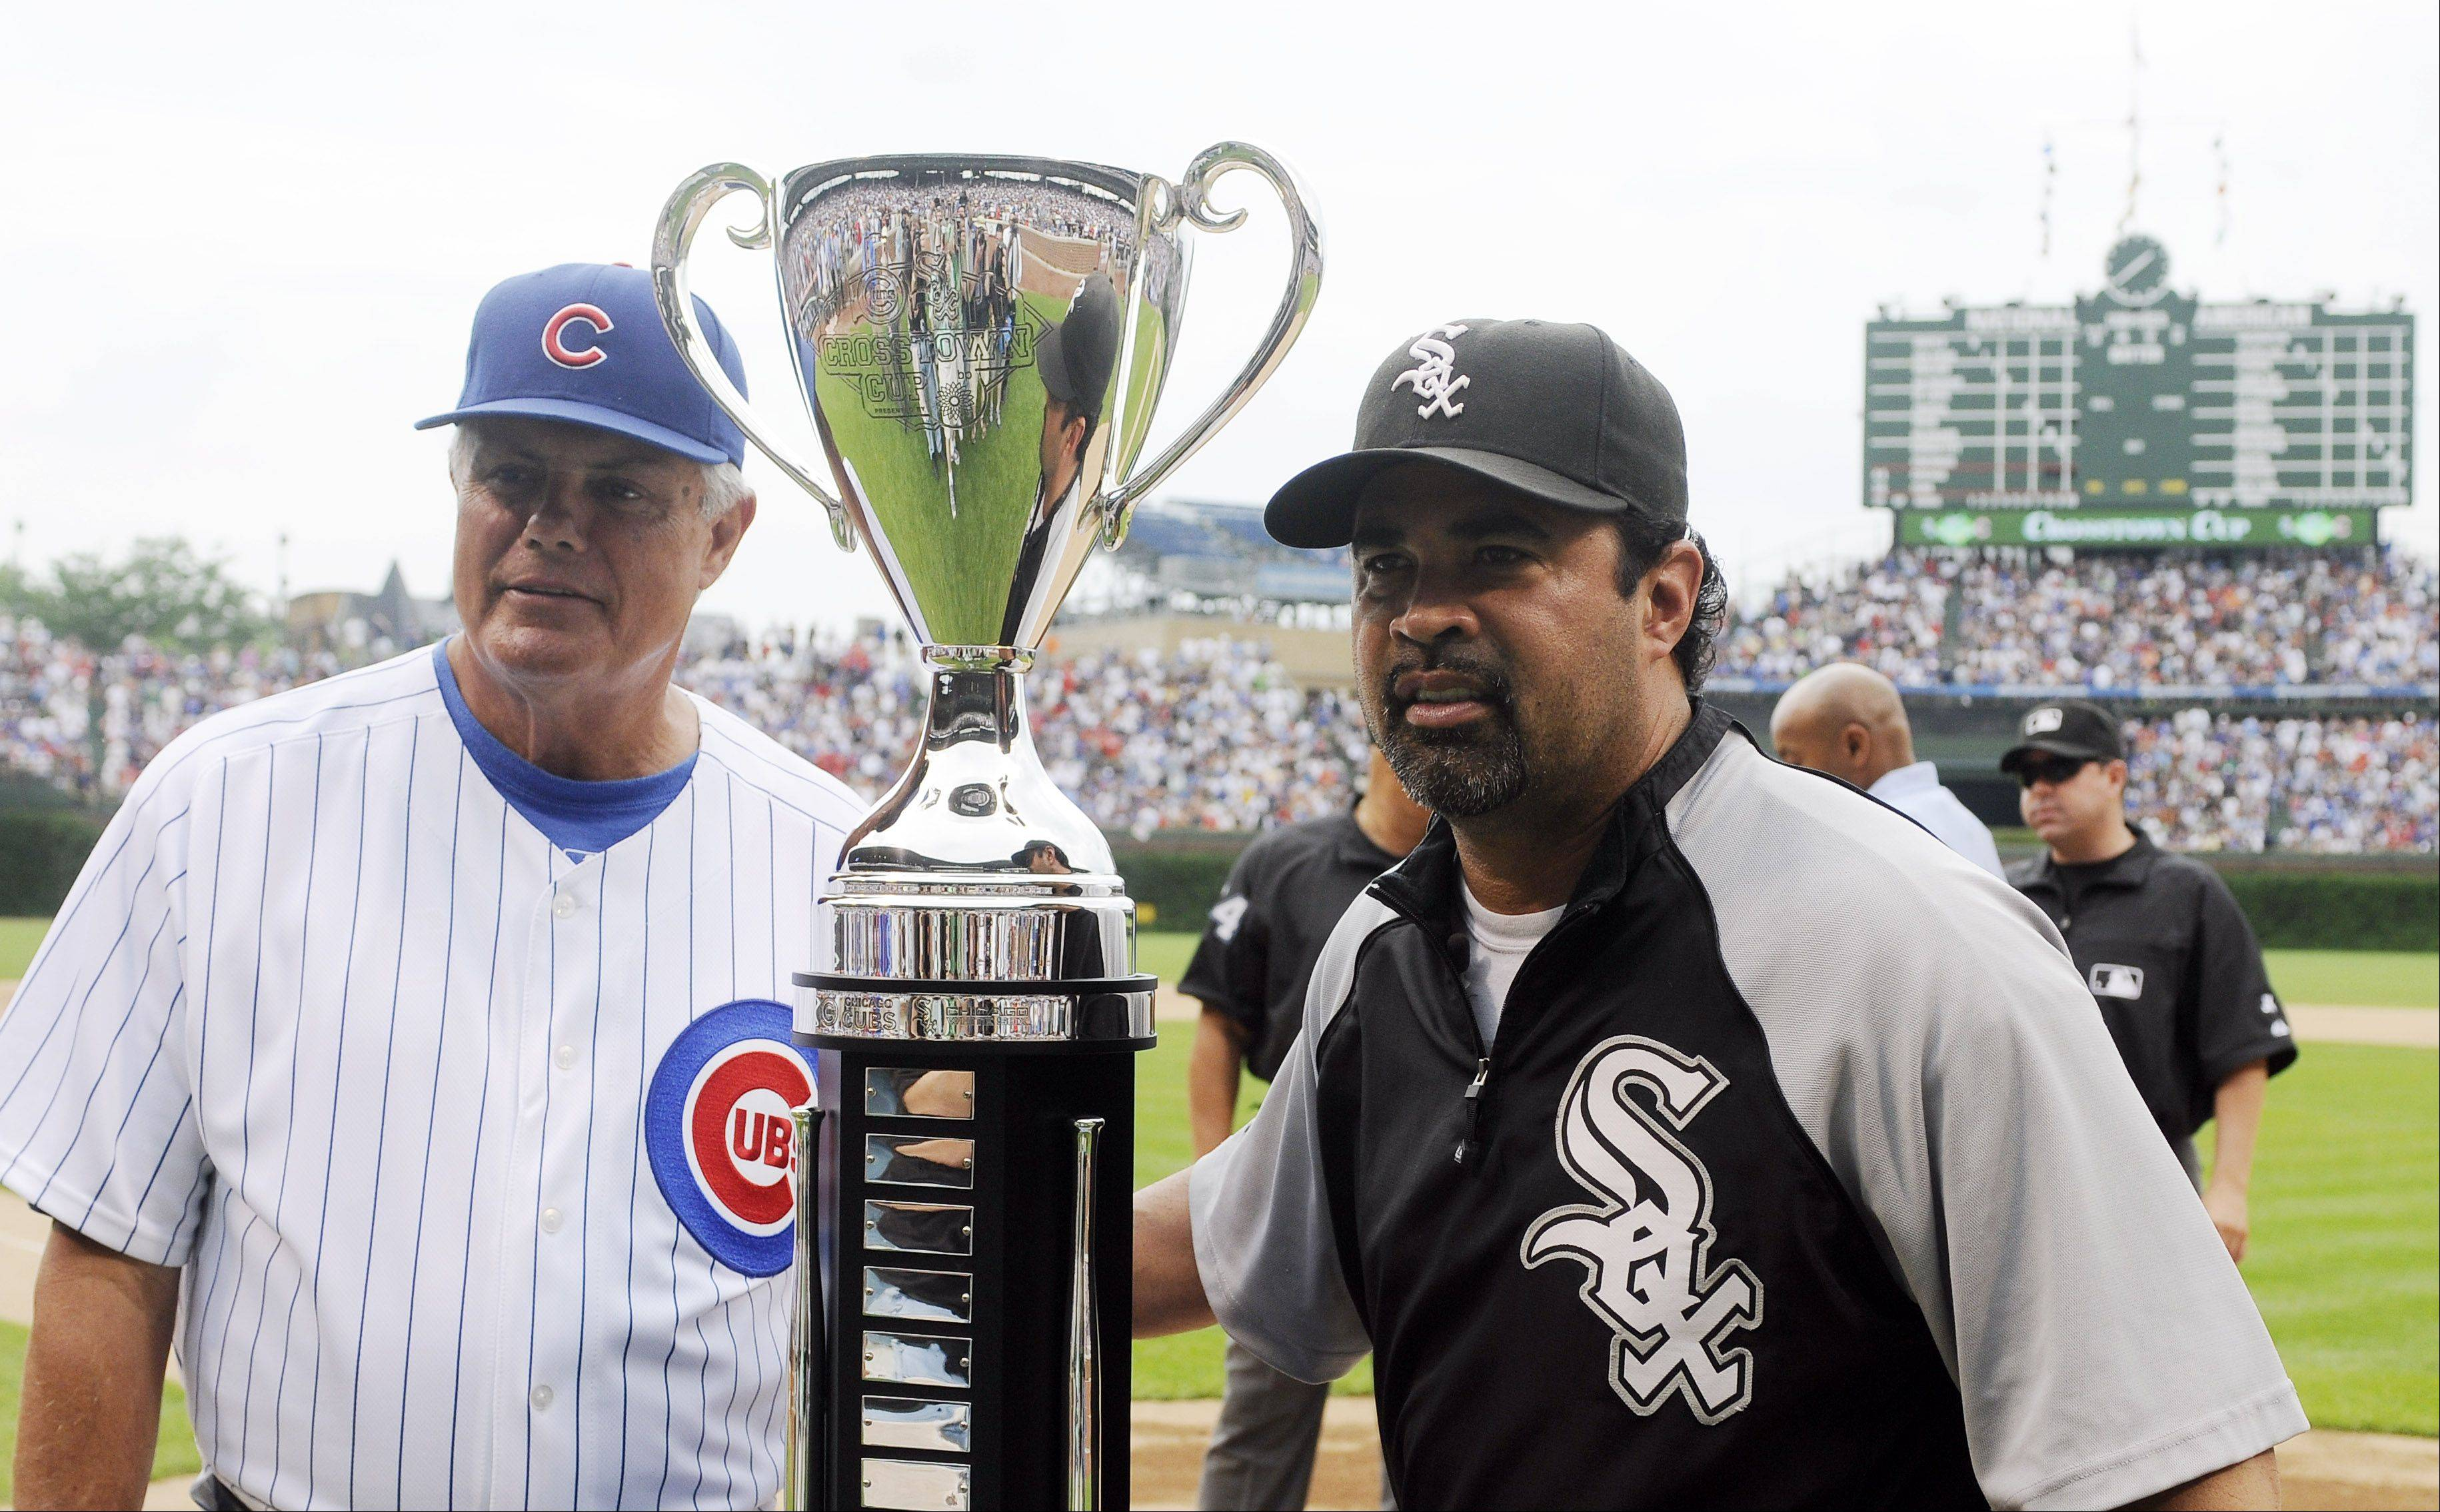 Chicago Cubs manager Lou Piniella and Chicago White Sox manager Ozzie Guillen pose with the BP Cup before a interleague baseball game Friday, June 11, 2010, at Wrigley Field in Chicago.